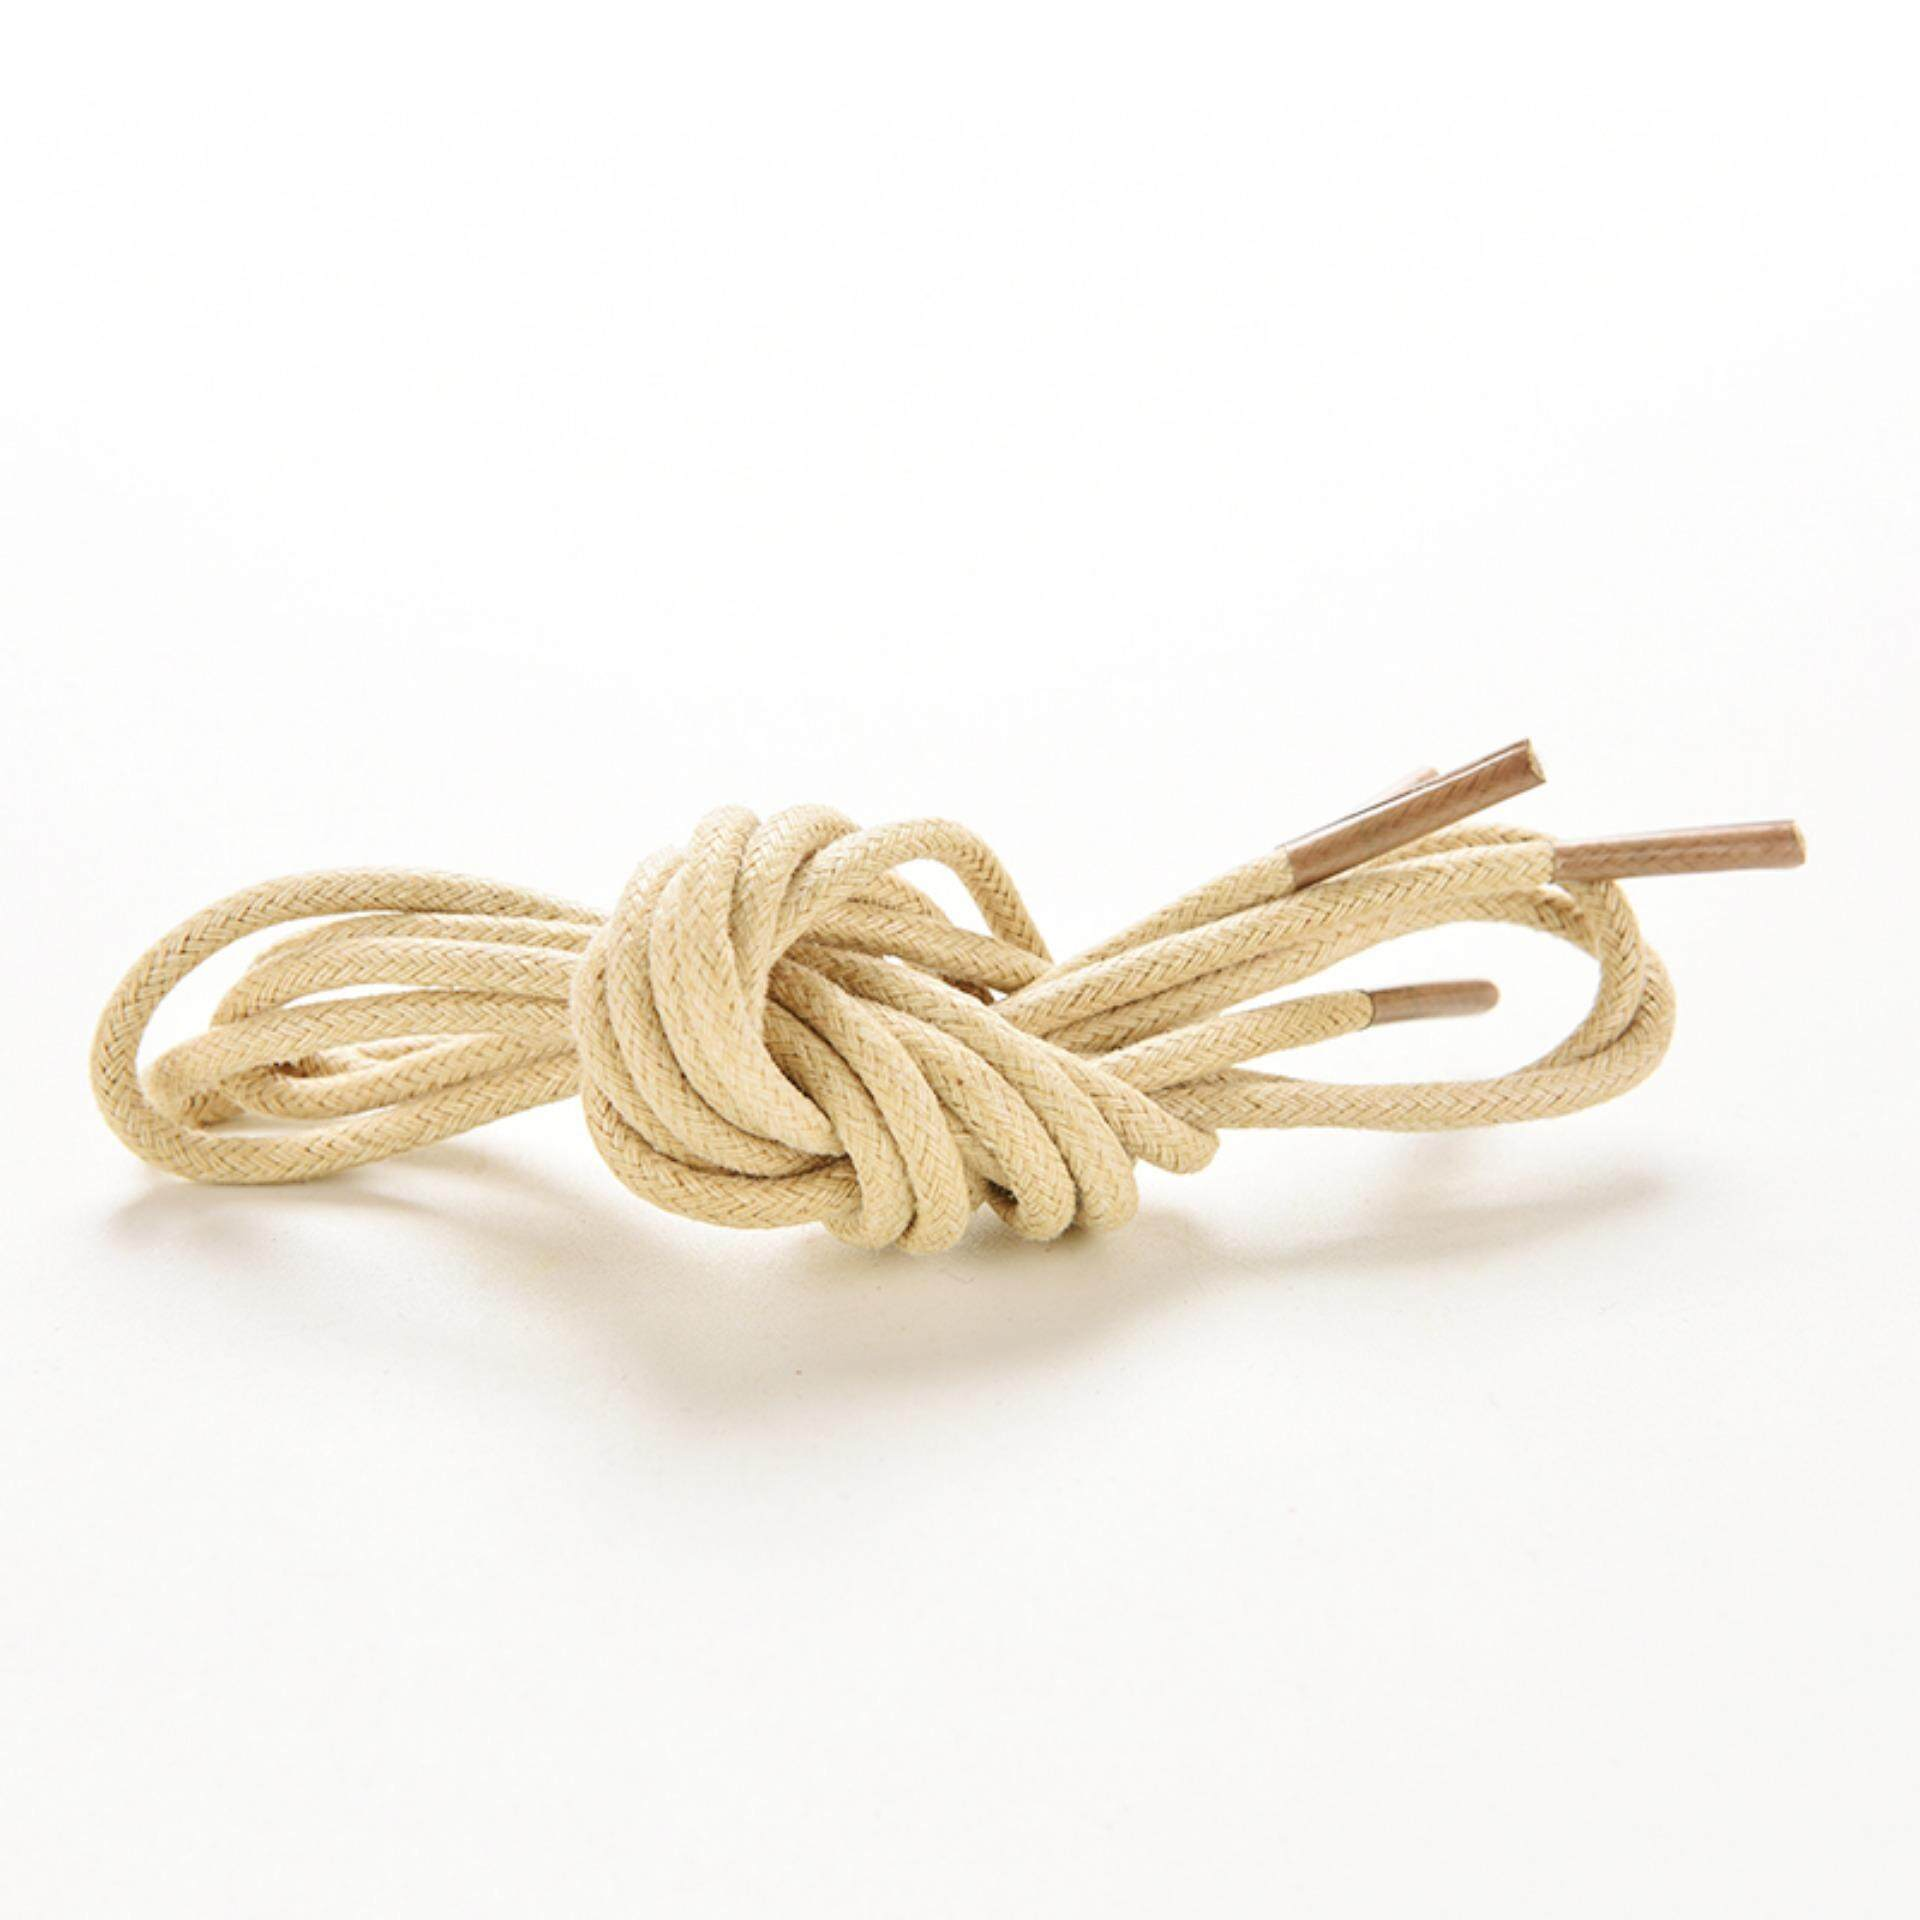 Multi Color Cotton Waxed Round Cord String Dress Shoe Laces 85cm 3 Pair Cream - intl